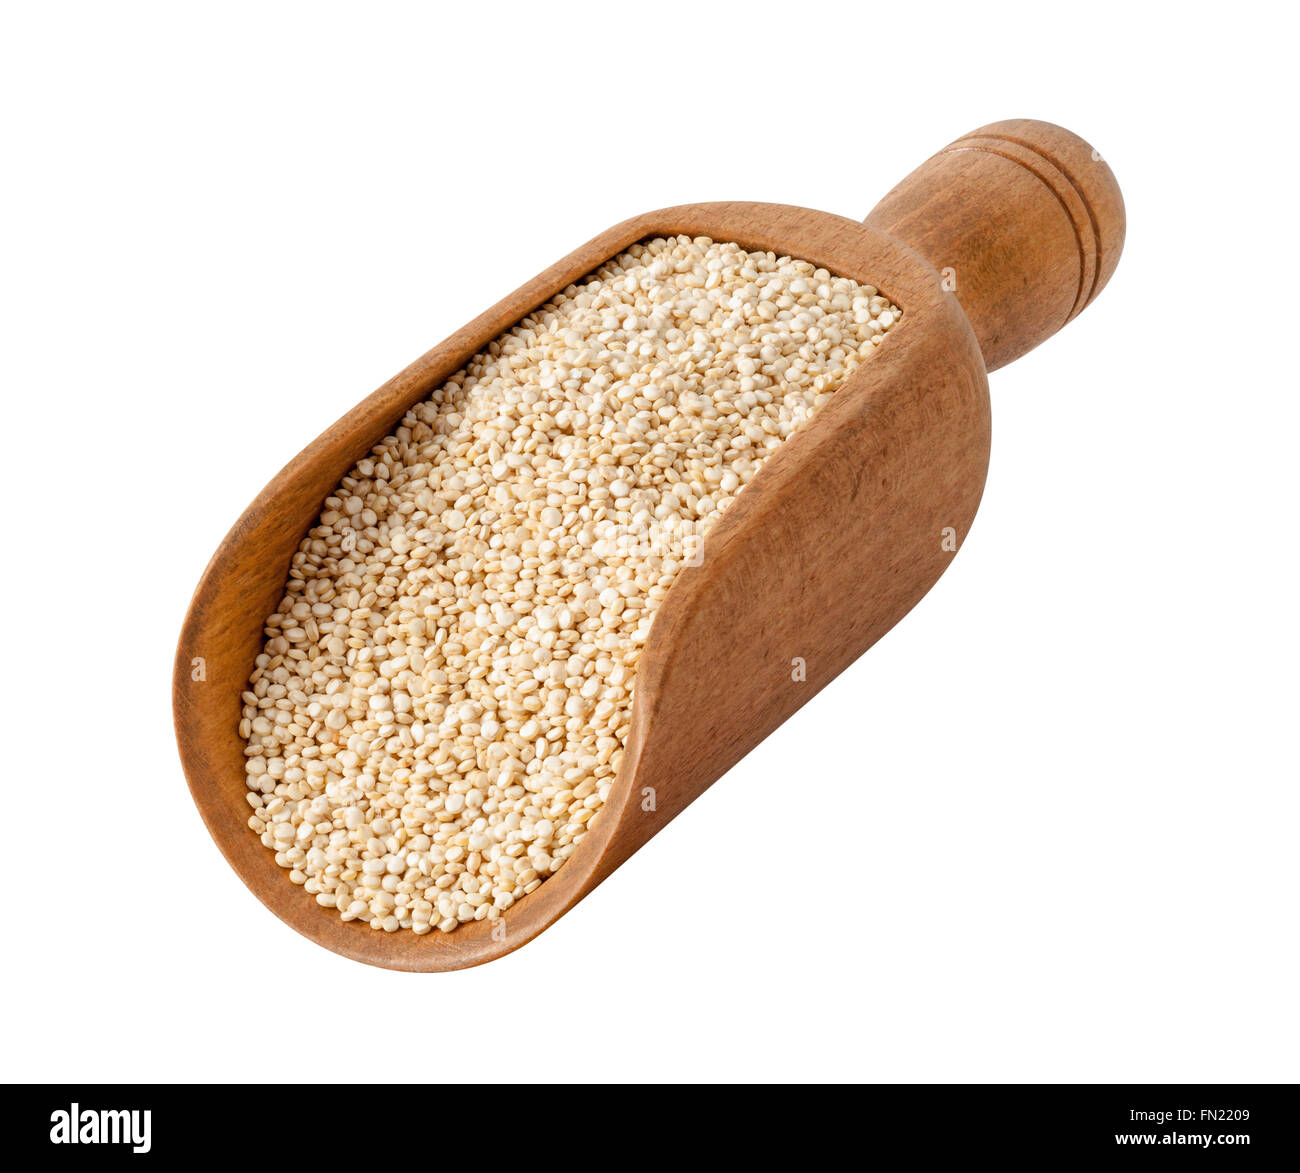 White Pearl Quinoa in a Wood Scoop. The image is a cut out, isolated on a white background. - Stock Image